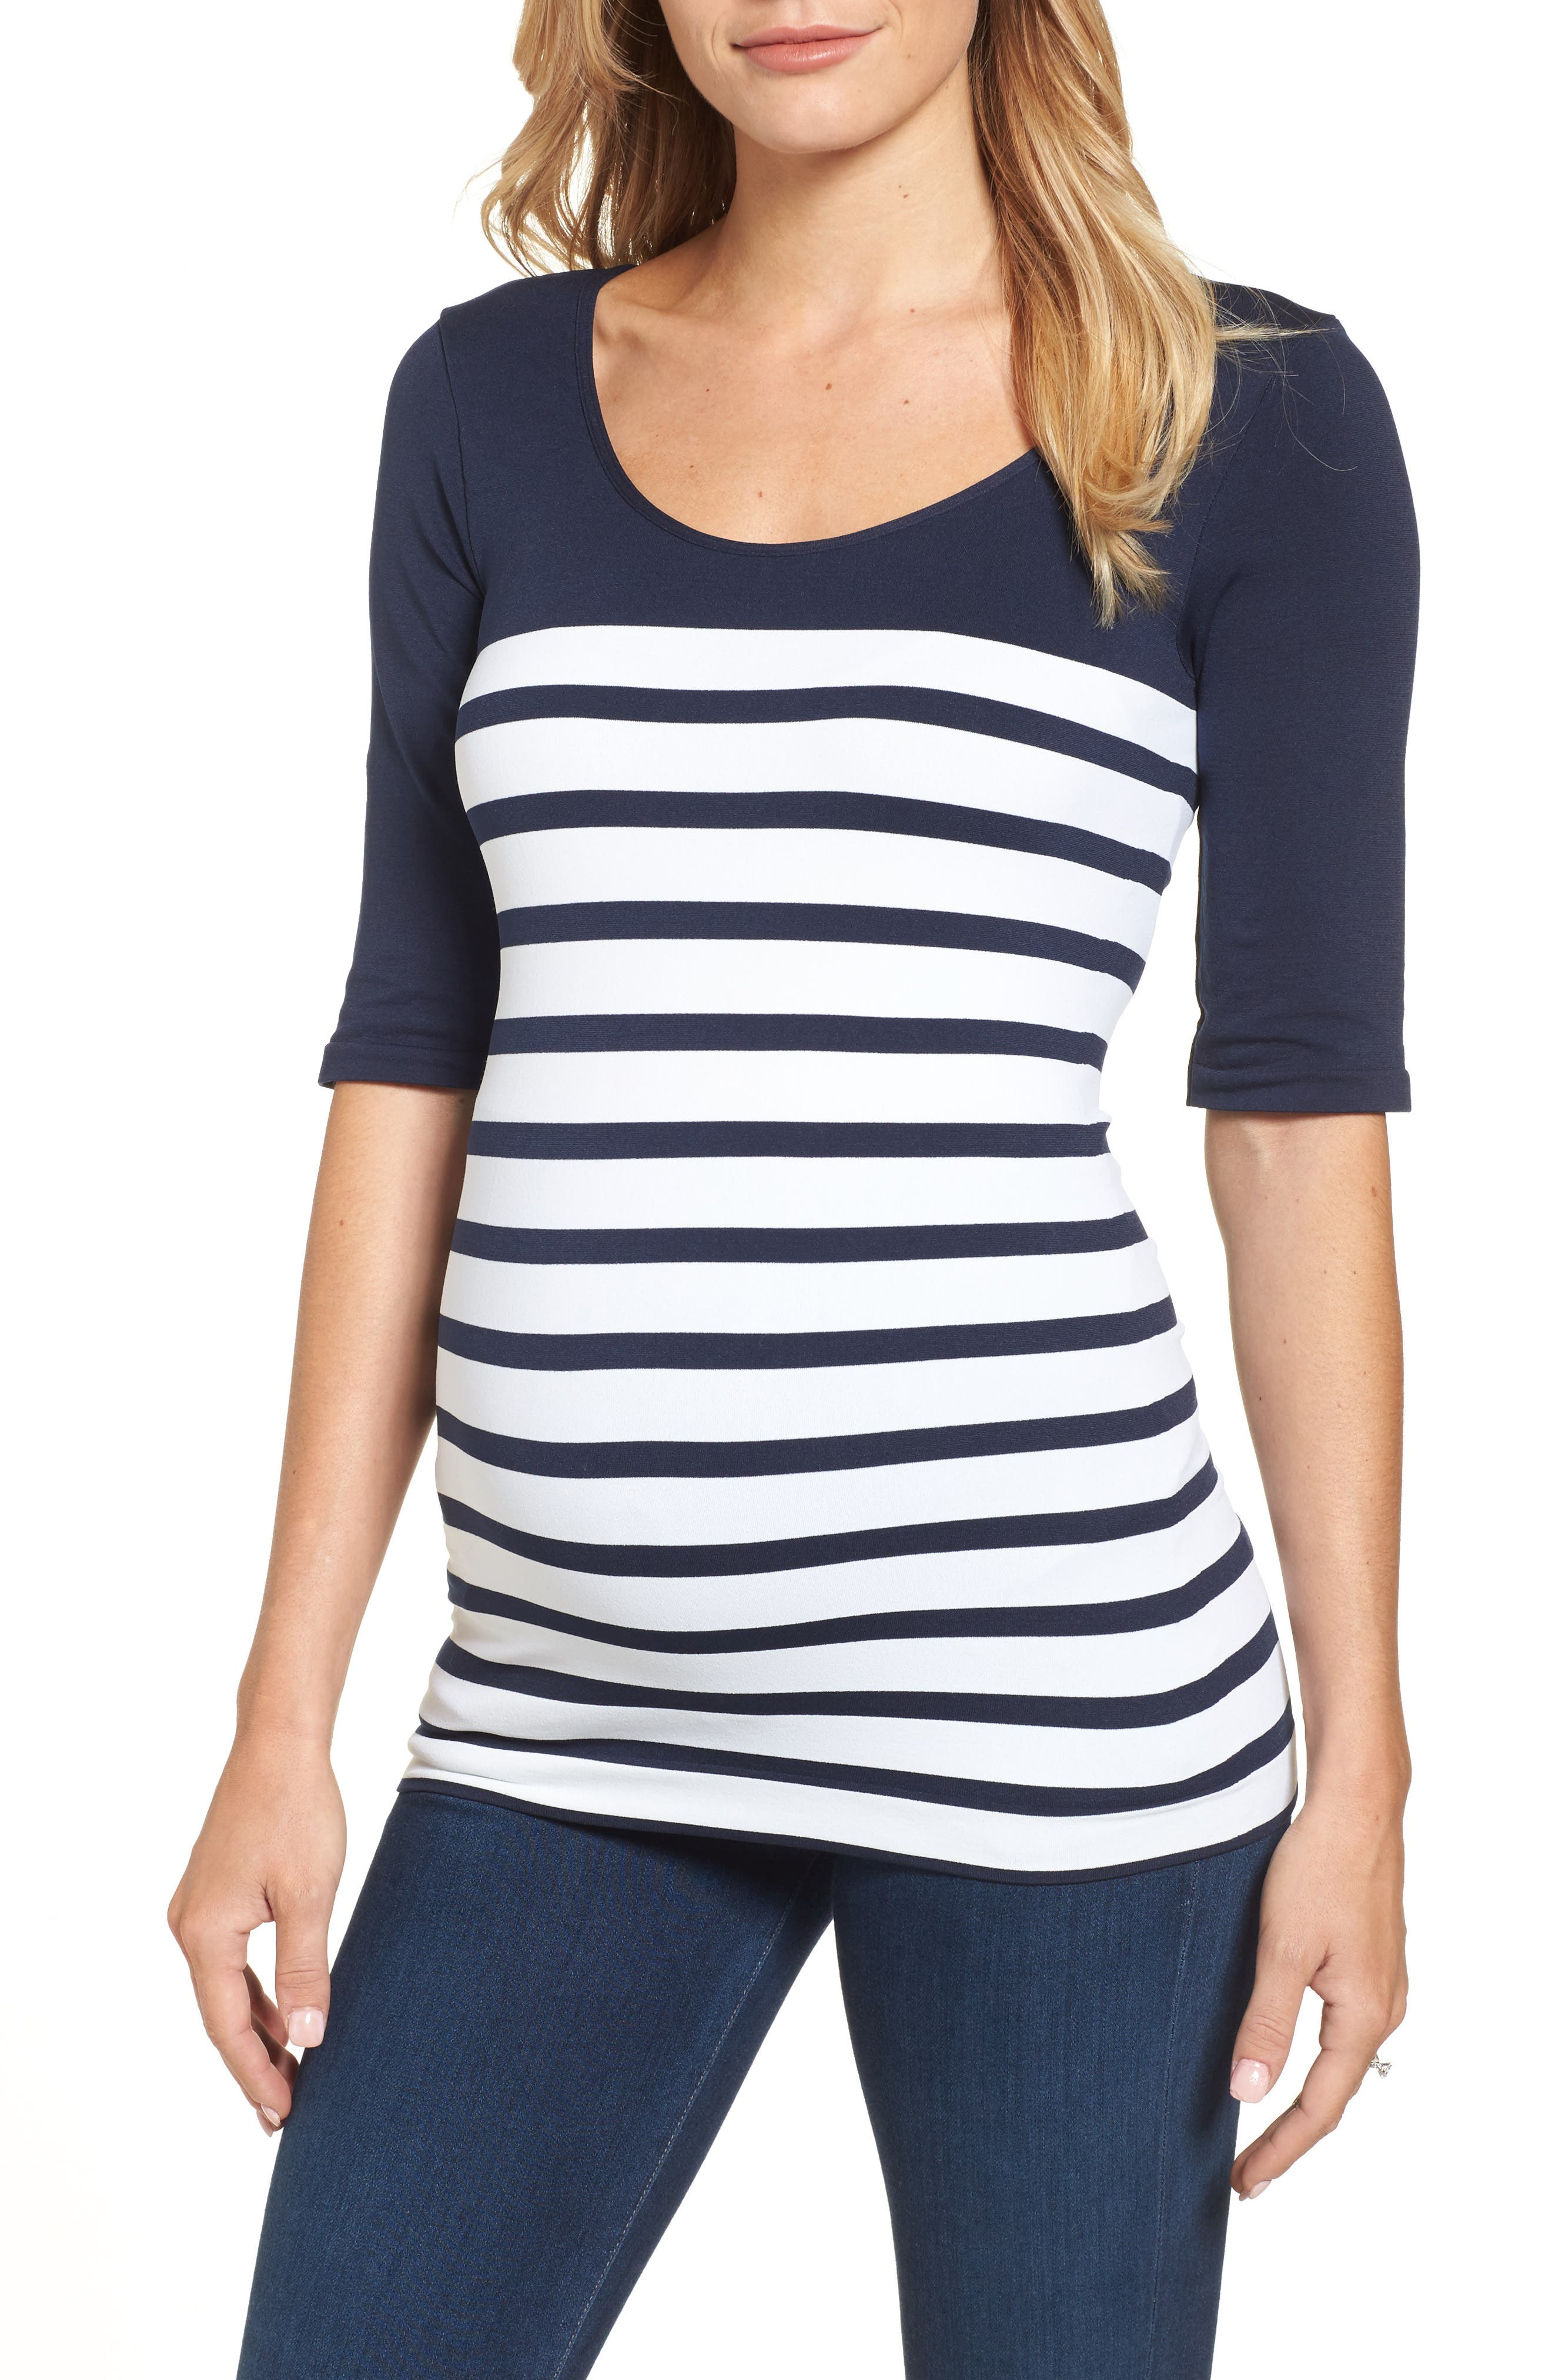 Alternate Image 1 Selected - Tees by Tina 'St. Barts' Ballet Sleeve Maternity Top